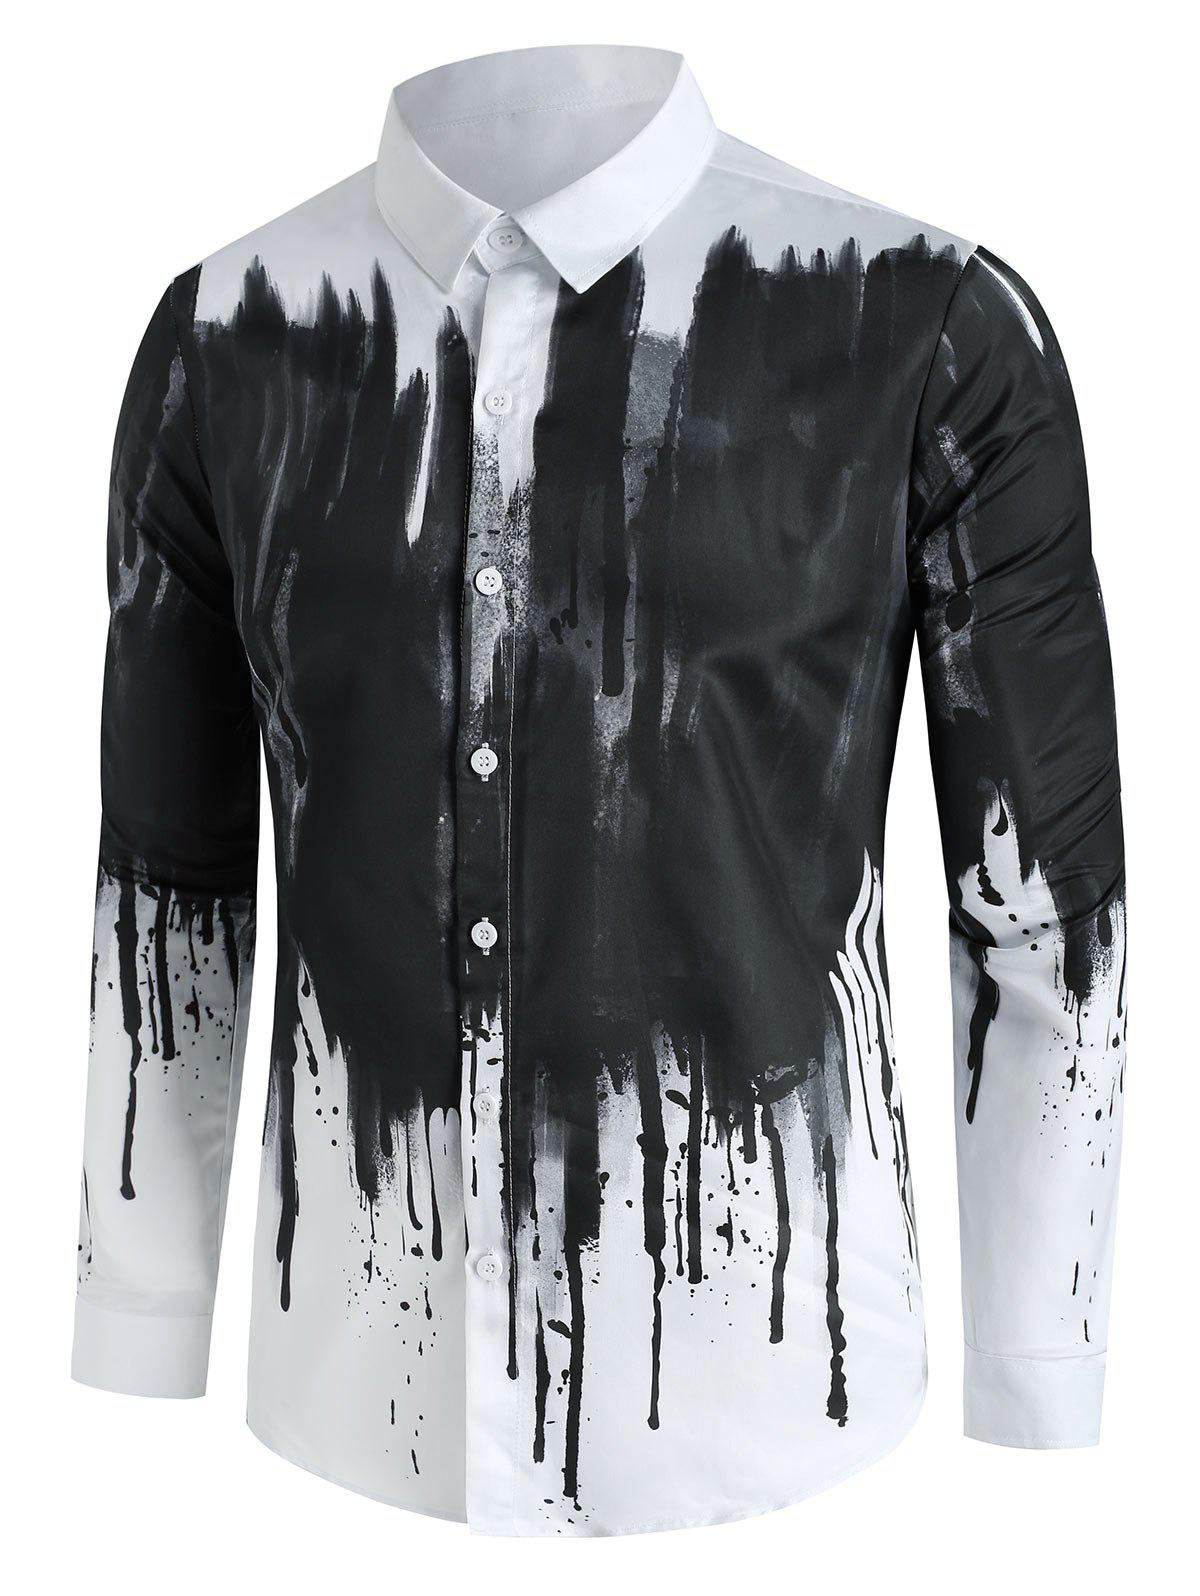 Chinese Splatter Ink Print Button Up Long Sleeve Shirt - WHITE S